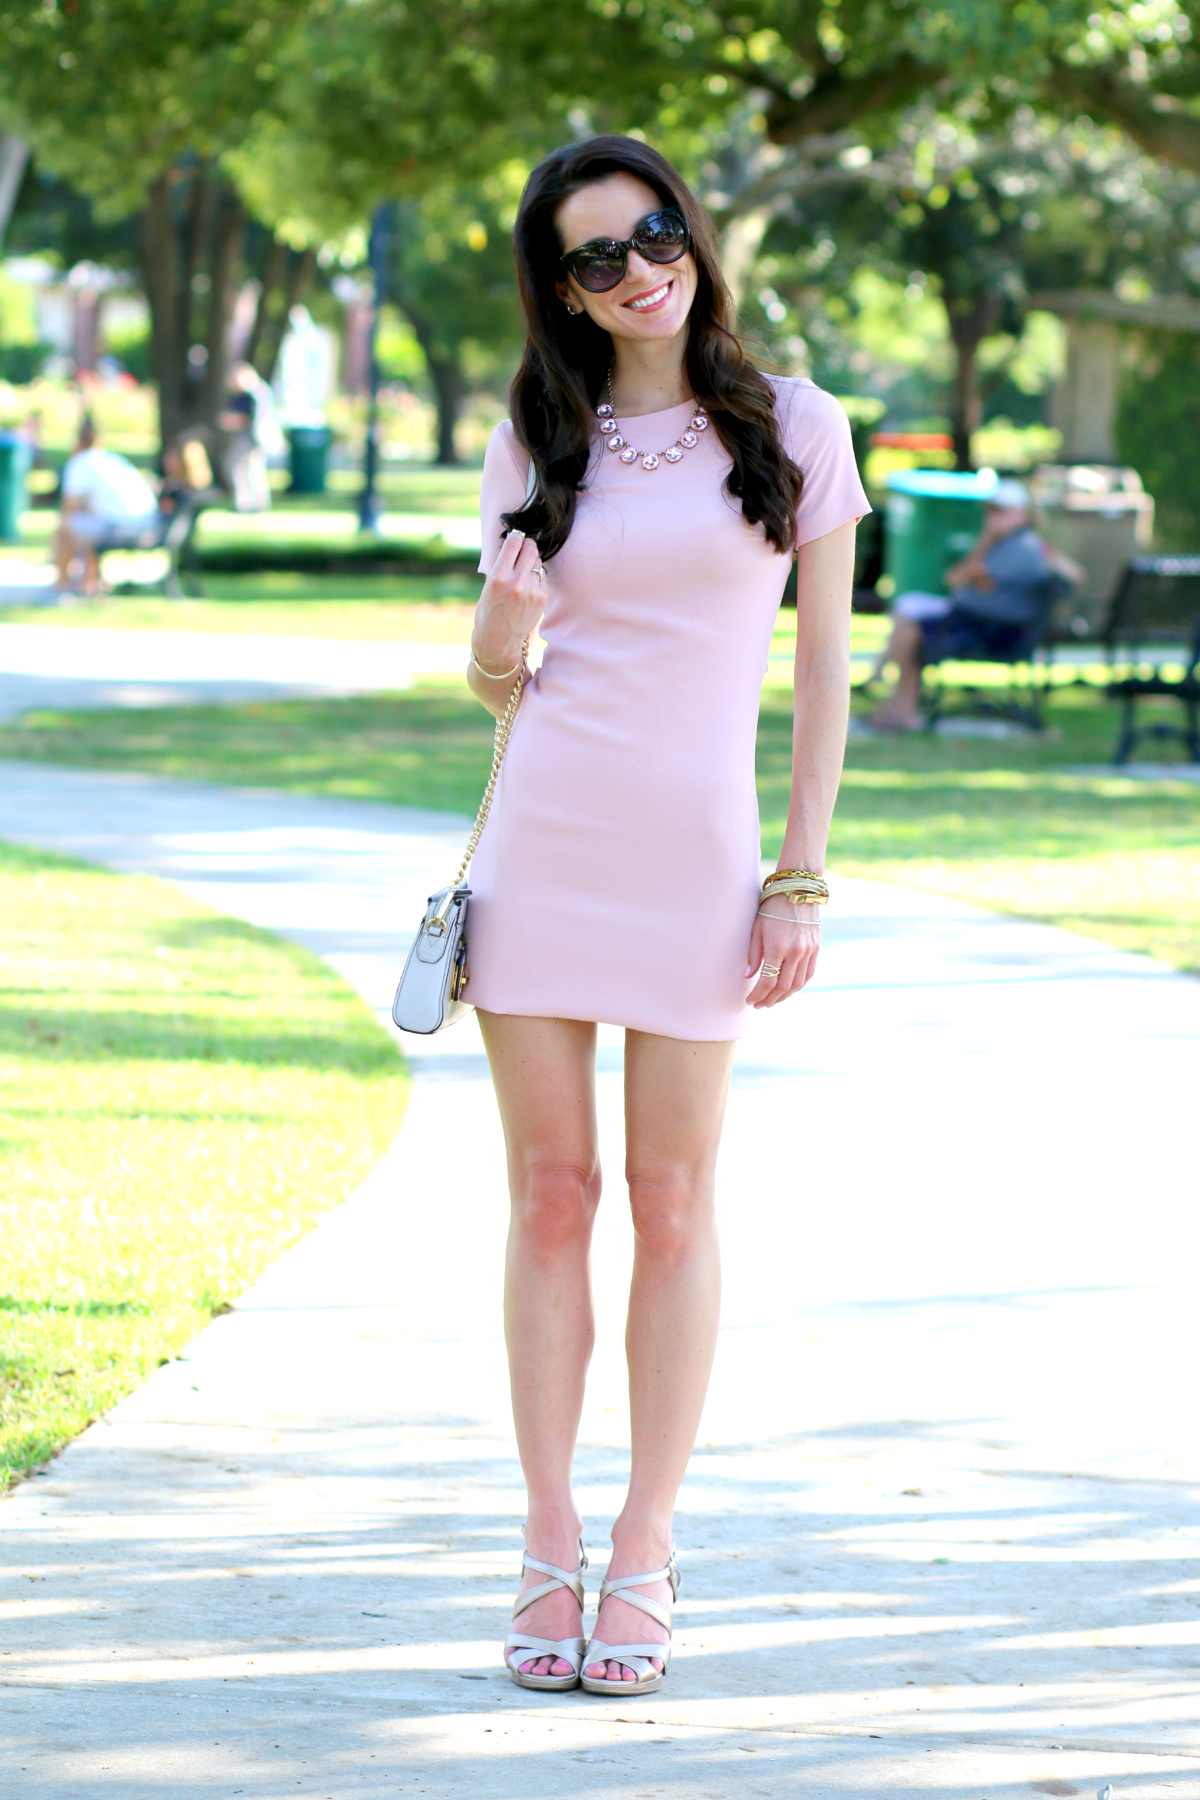 Park Avenue Fashion Week, PAFW15, Forema Boutique, Pink Out, Stephanie Ziajka, Diary of a Debutante